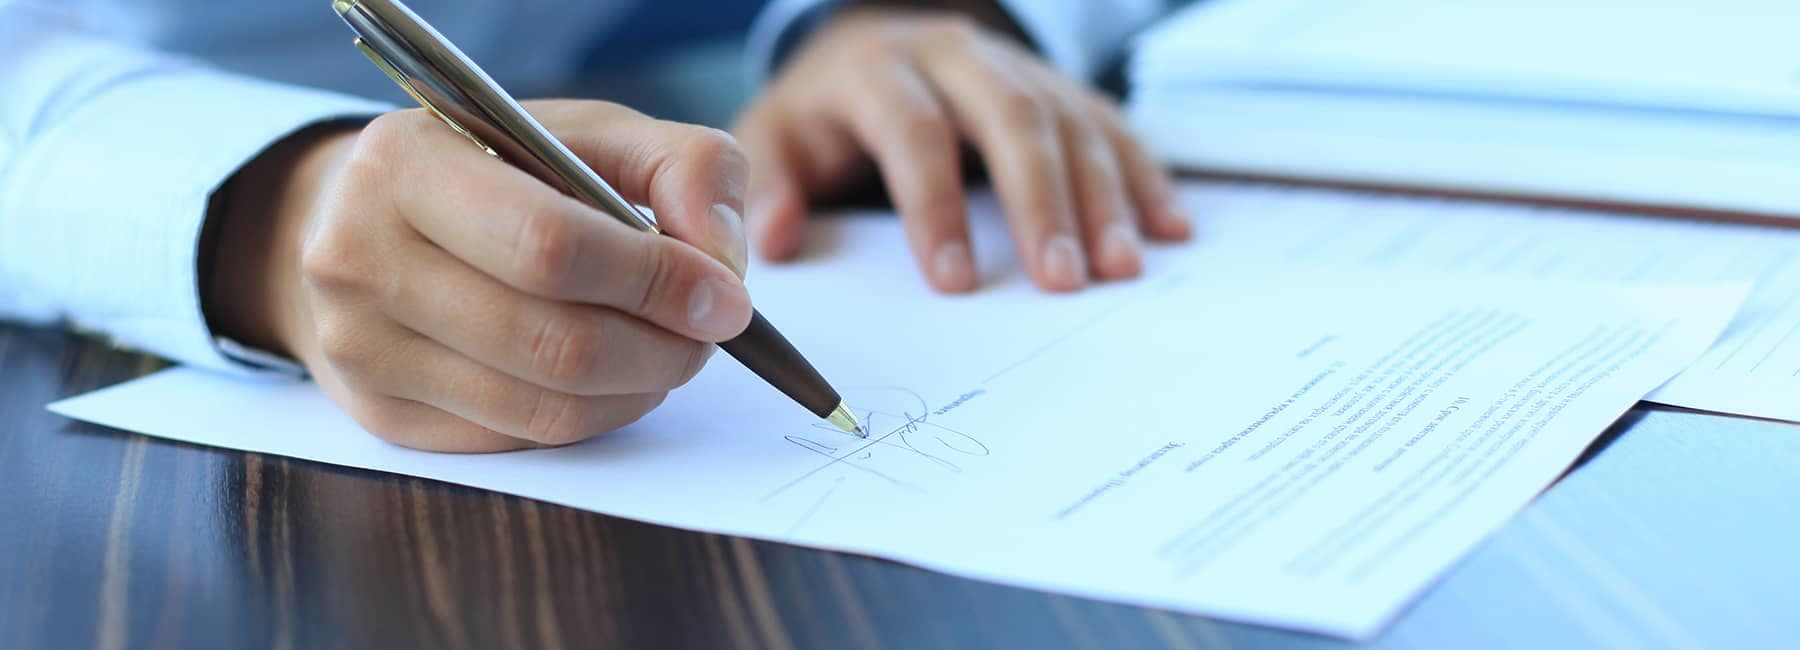 person writing up contract